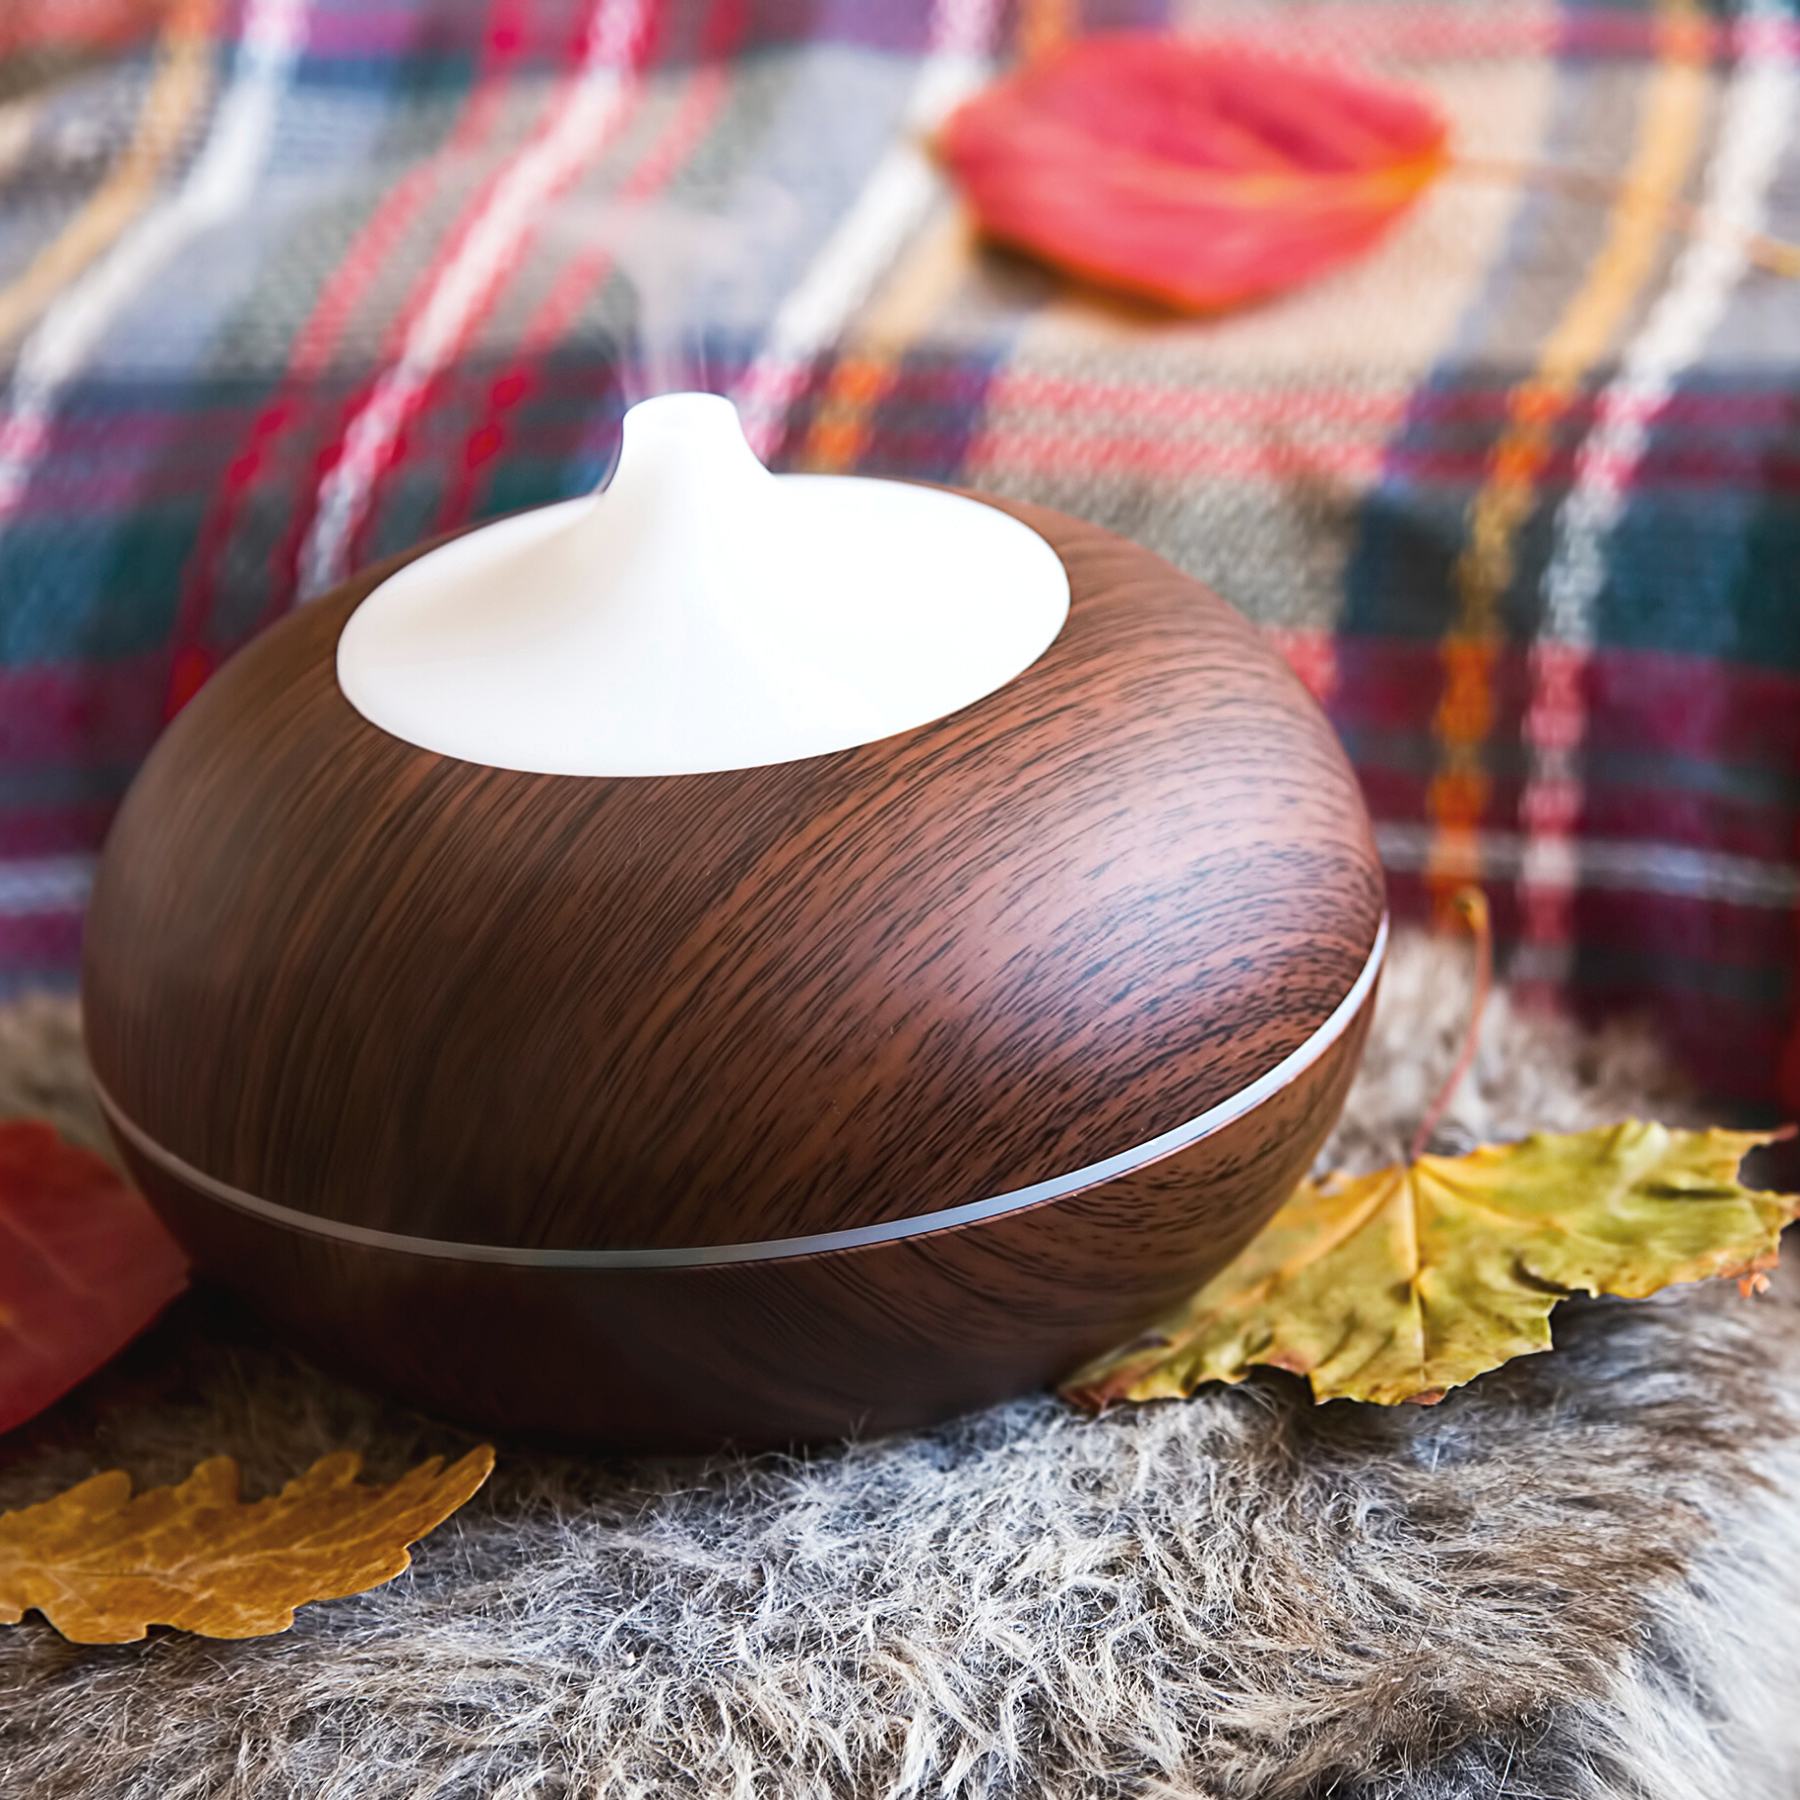 white and dark wood essential oil diffuser sitting on an end table covered with a furry blanket and autumn leaves, with a plaid blanket in the backround